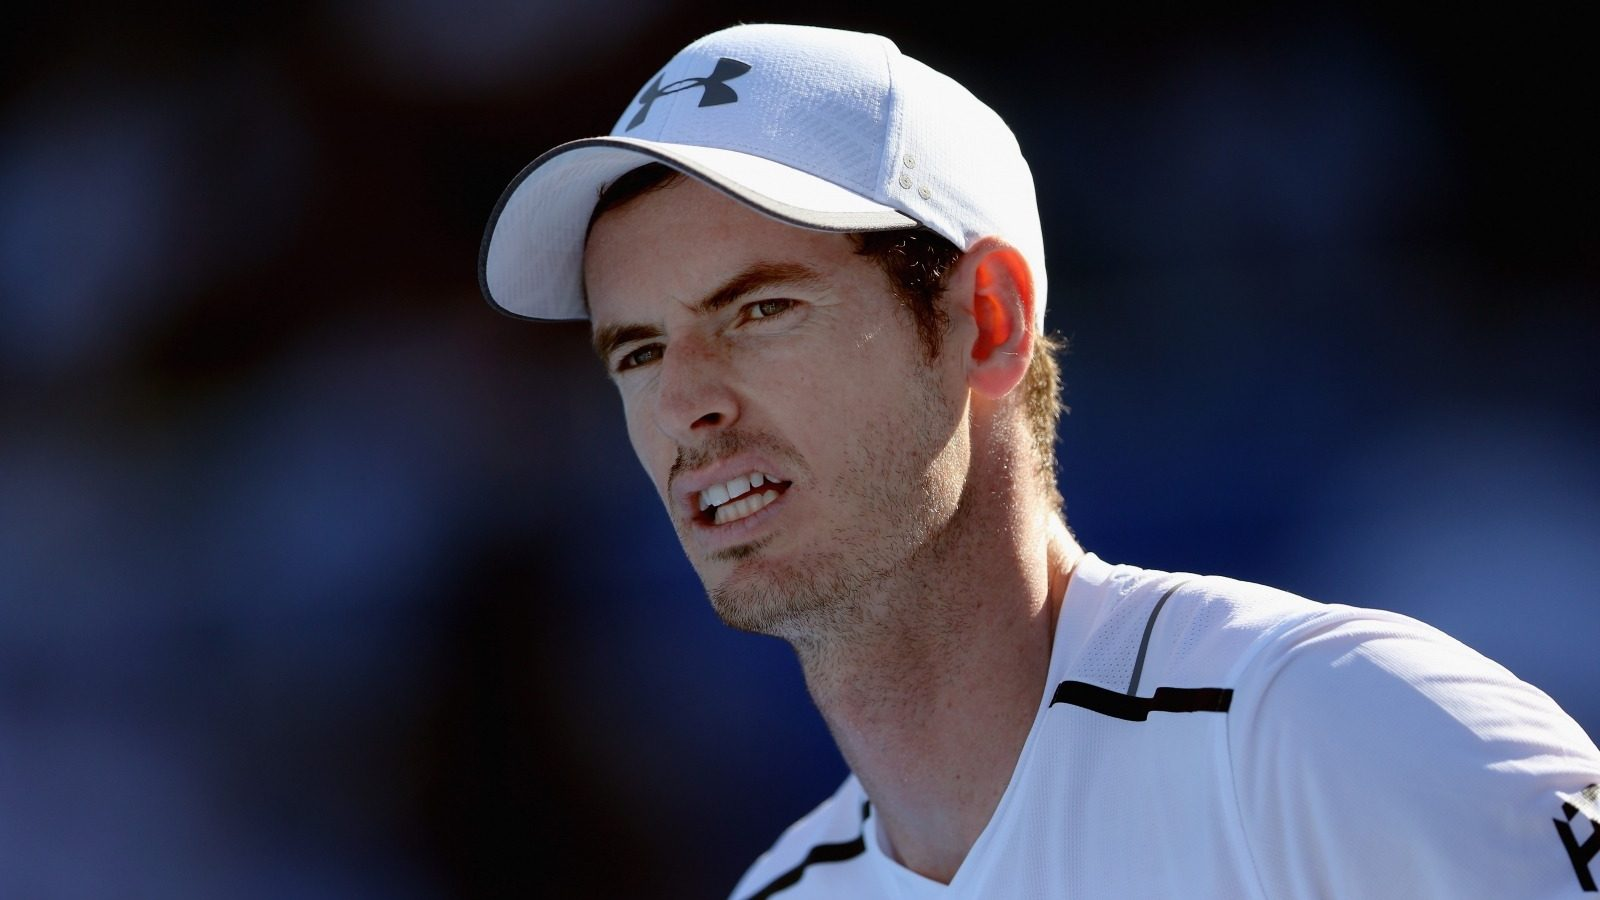 Andy_Murray_-_Tennis_Player